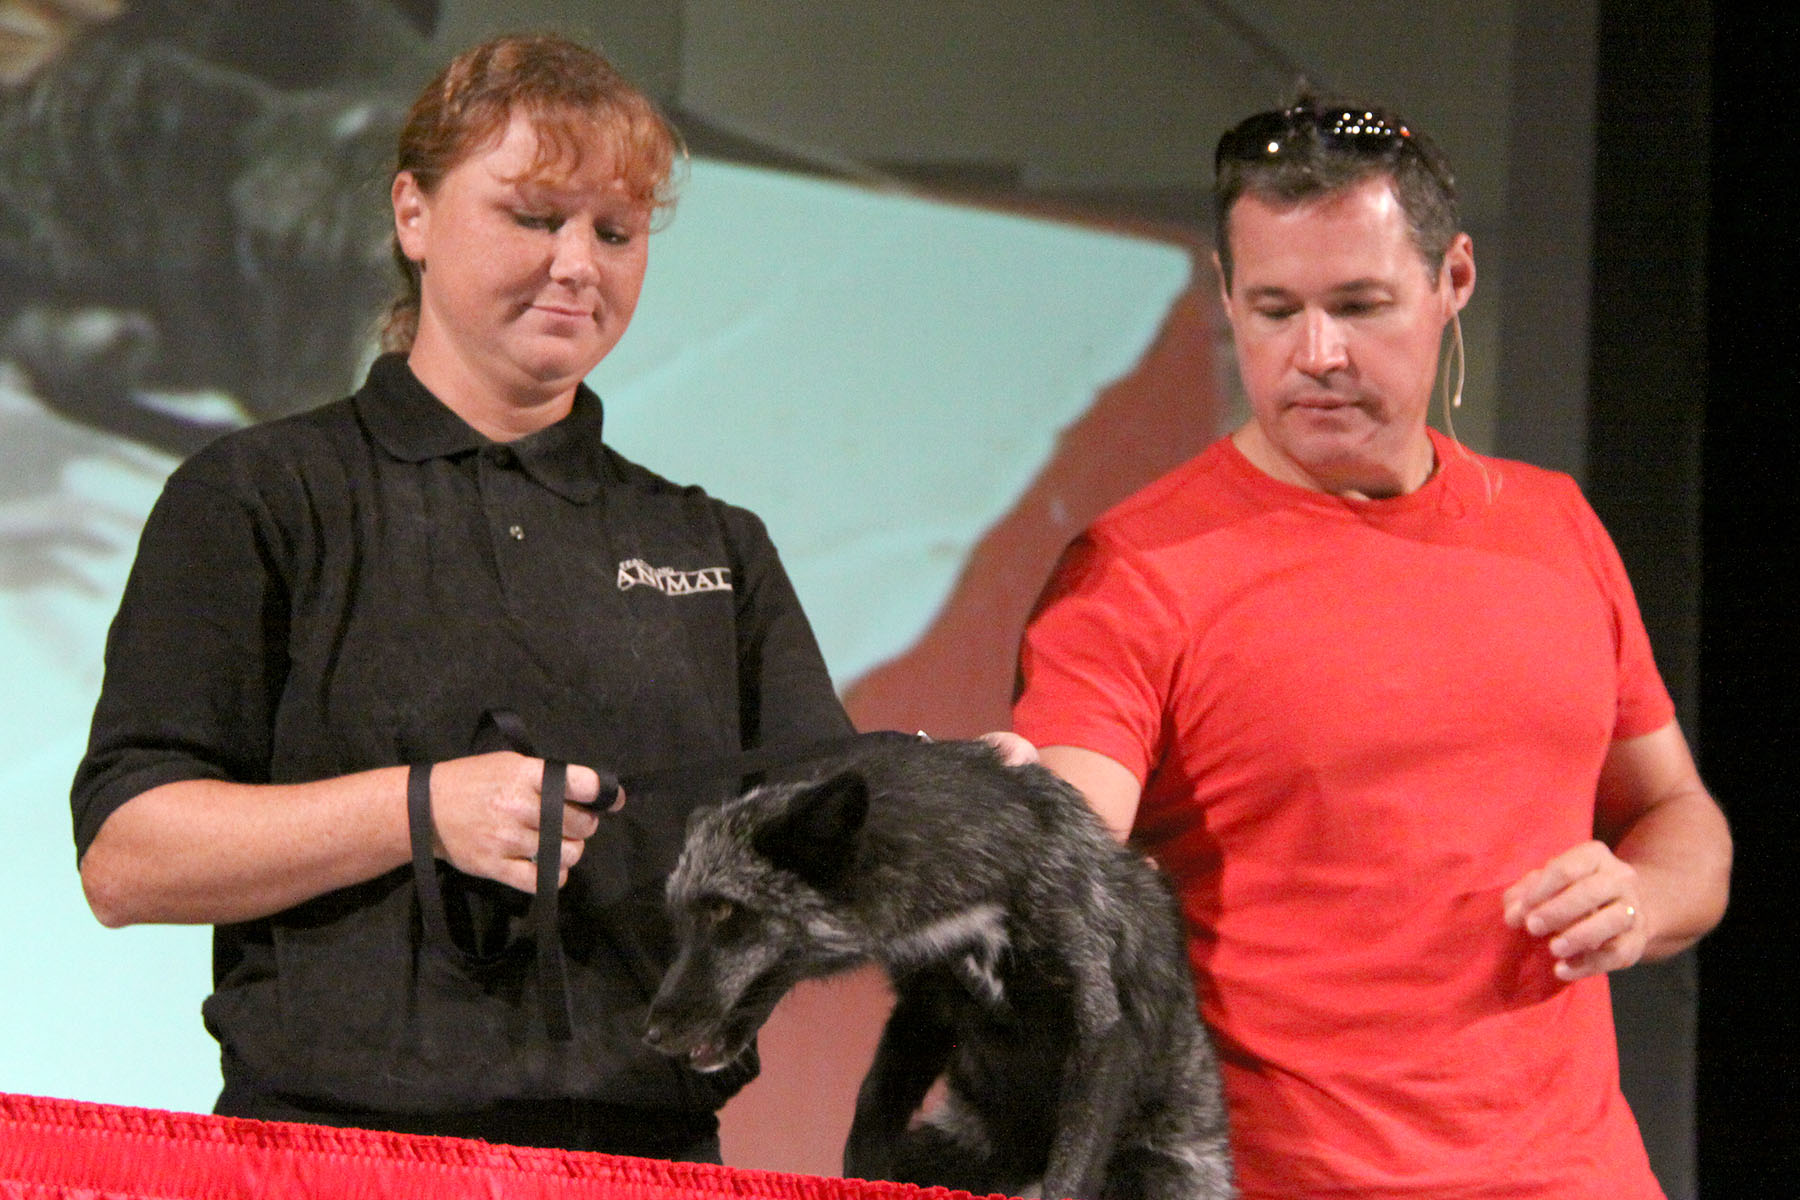 Dante, Renee, and Jeff Corwin - 09-2013